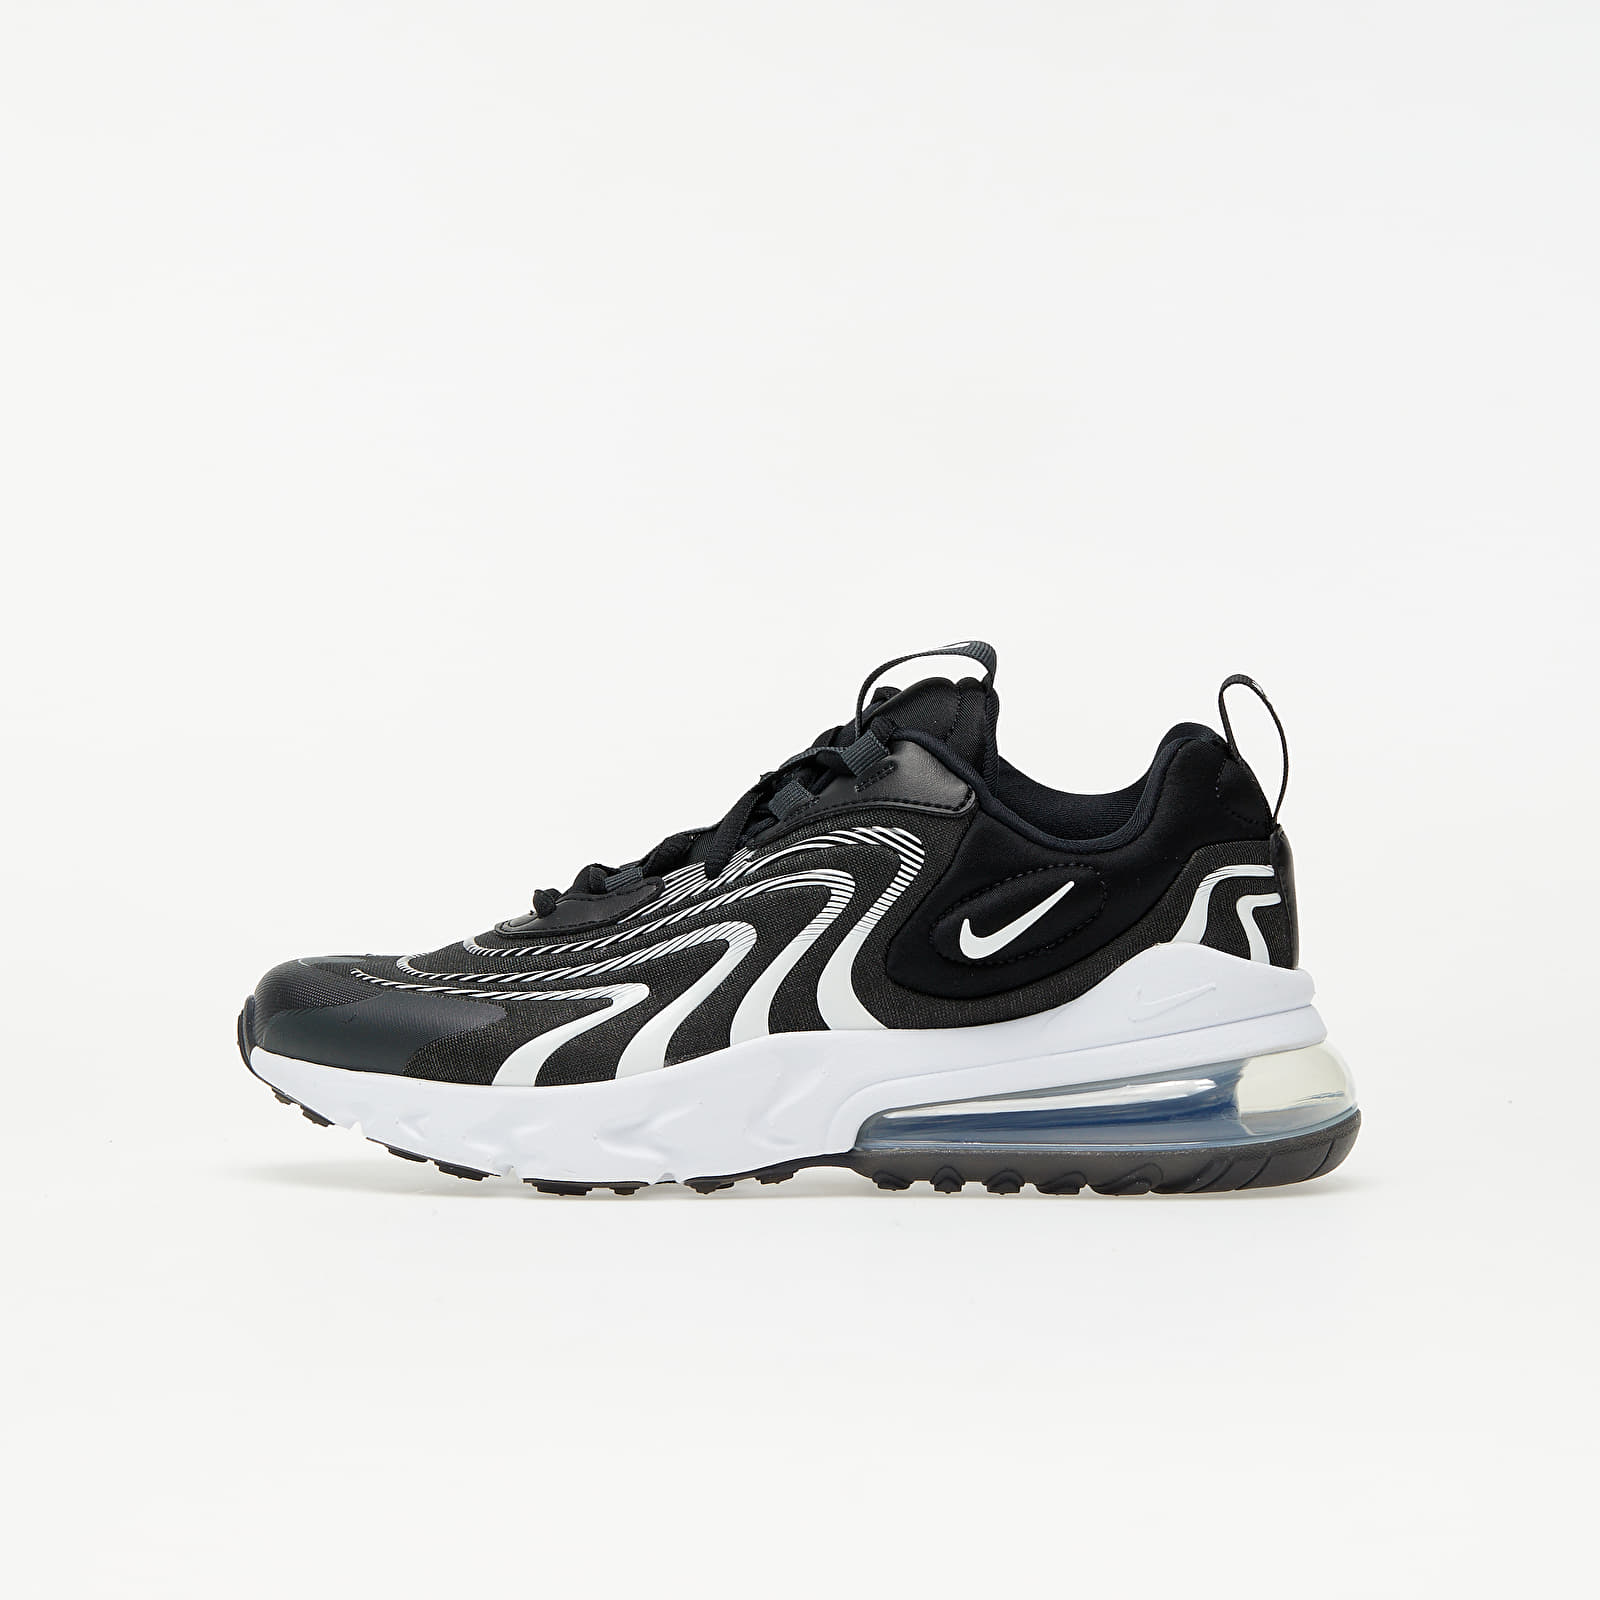 Nike Air Max 270 React ENG (GS) Black/ White-Dk Smoke Grey-Wolf Grey EUR 40